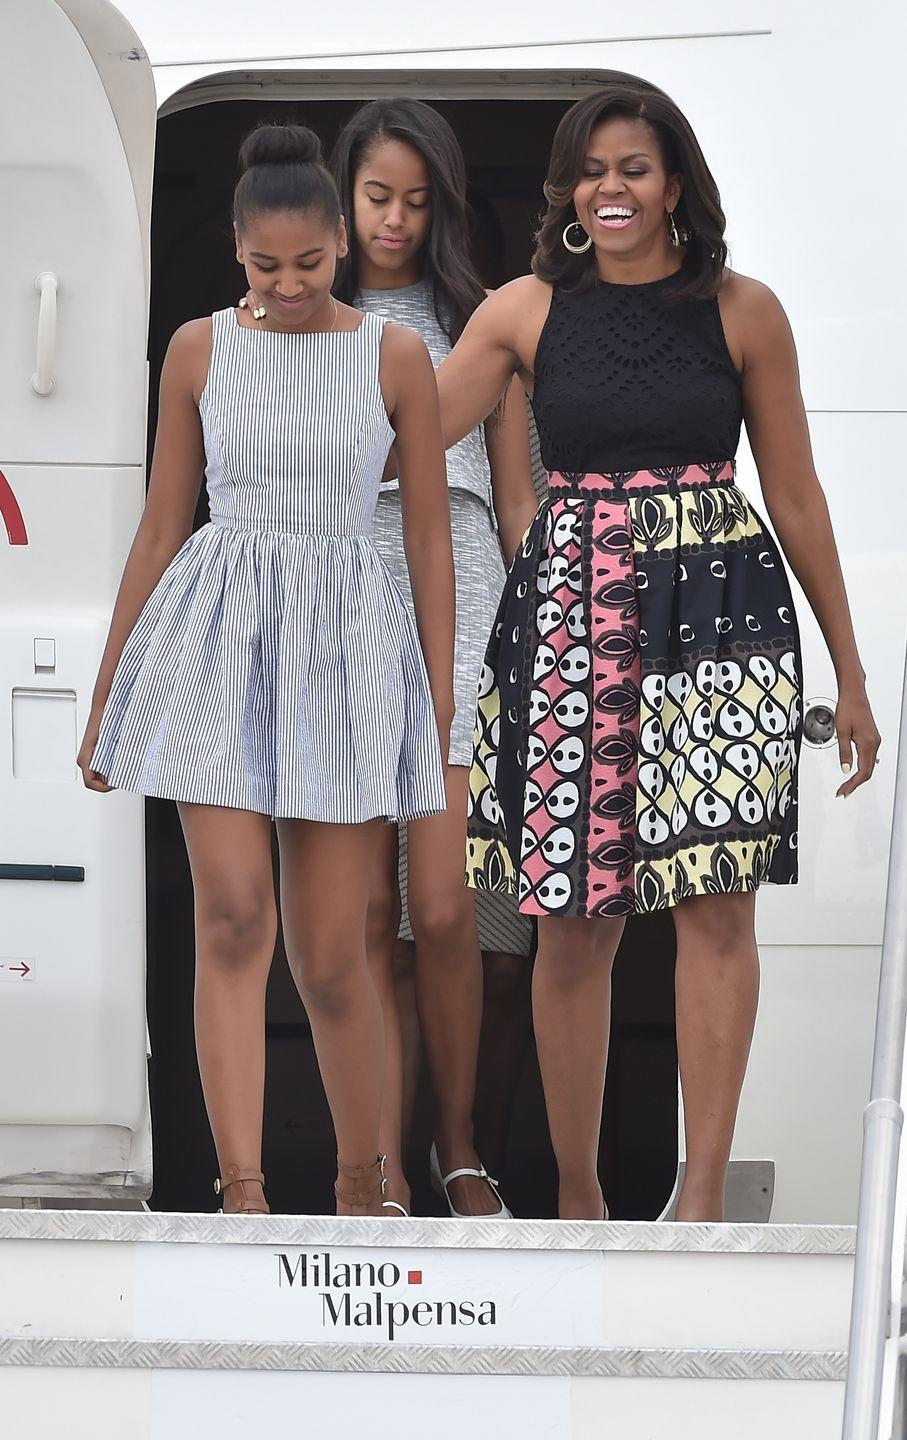 "<p>""<a href=""https://www.wmagazine.com/story/michelle-obama-parenting-strategy-sasha-malia-obama"" rel=""nofollow noopener"" target=""_blank"" data-ylk=""slk:I can't"" class=""link rapid-noclick-resp"">I can't</a> cherish you to death. We have to raise our children to be the adults that we want them to be, and that starts young. You can't be so afraid that life will break them that you don't prepare them for life."" </p>"